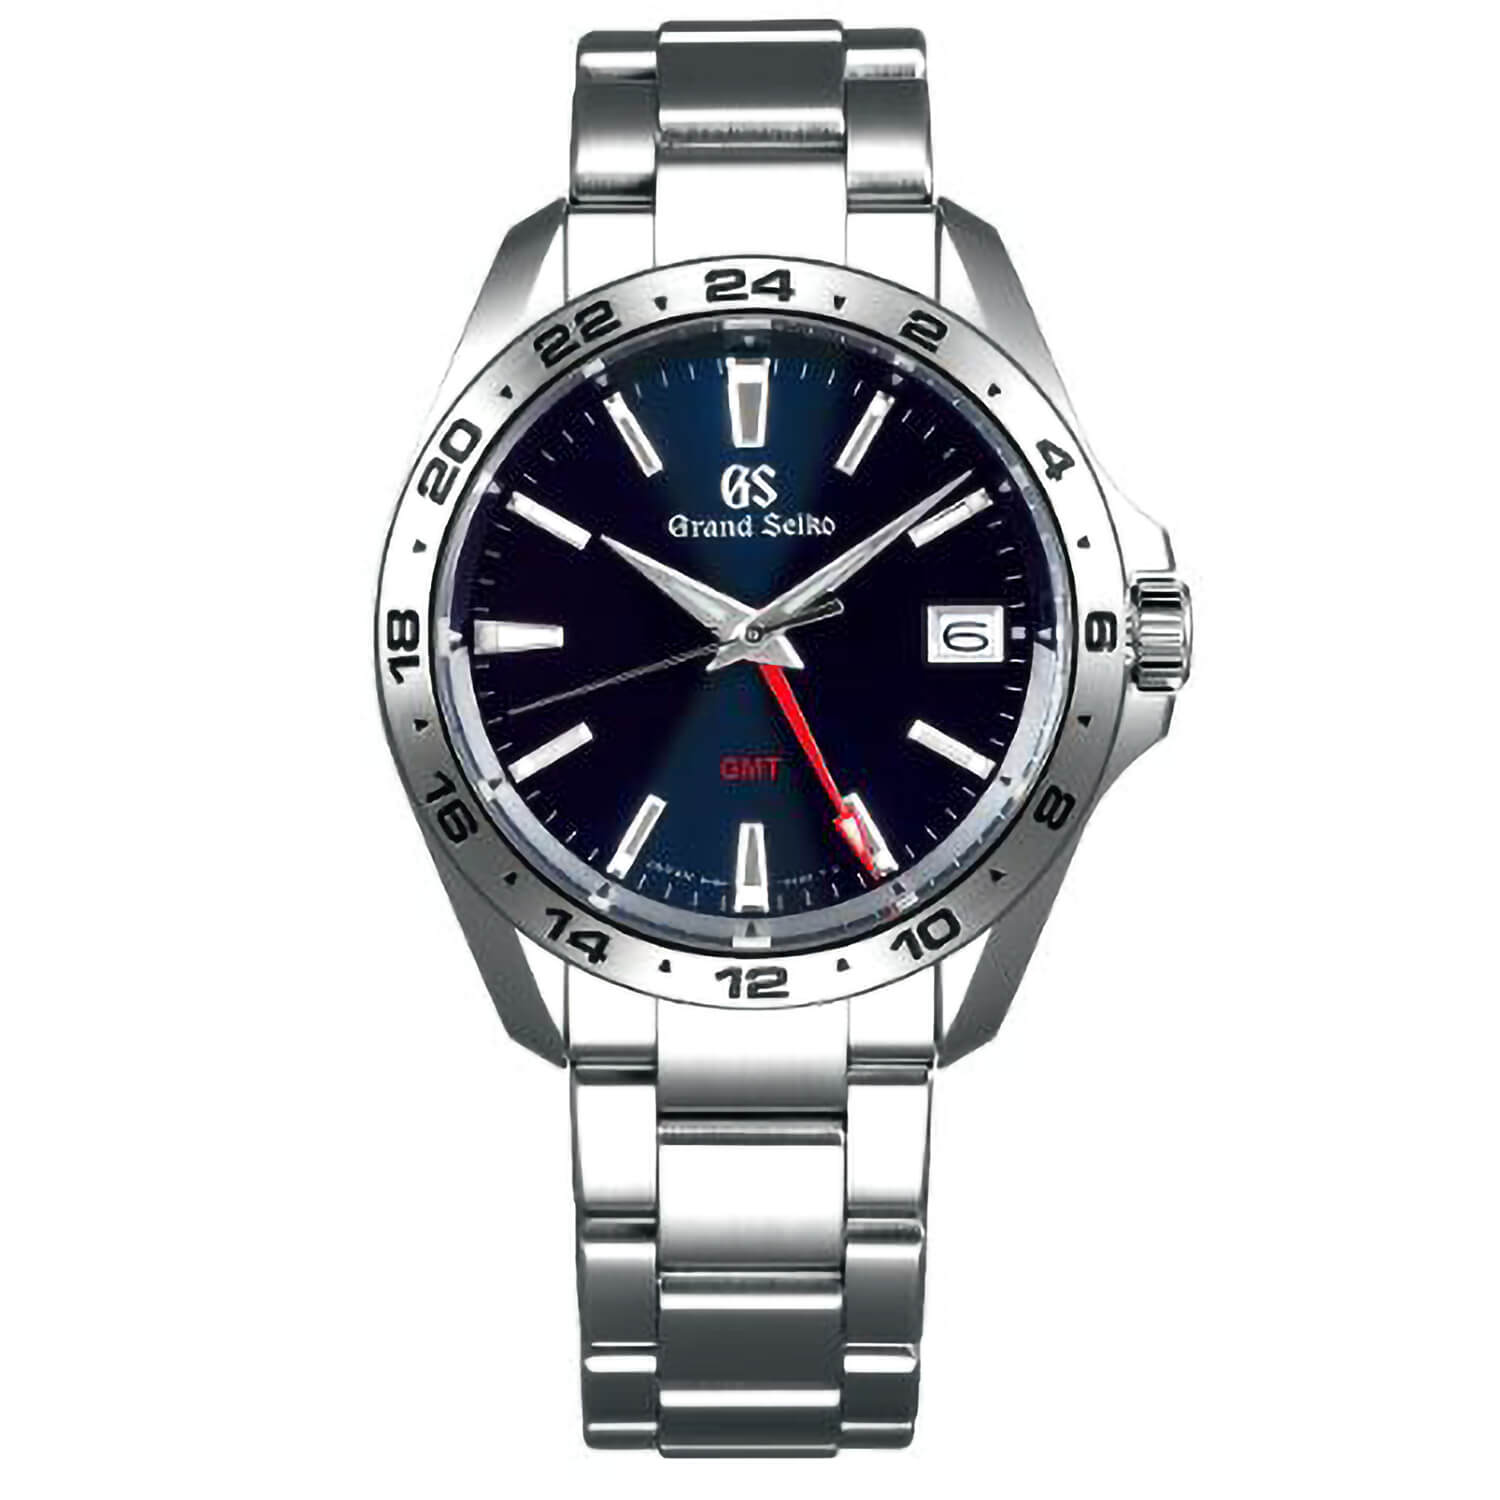 Grand Seiko Sports Quartz Blue Dial Stainless Steel Watch